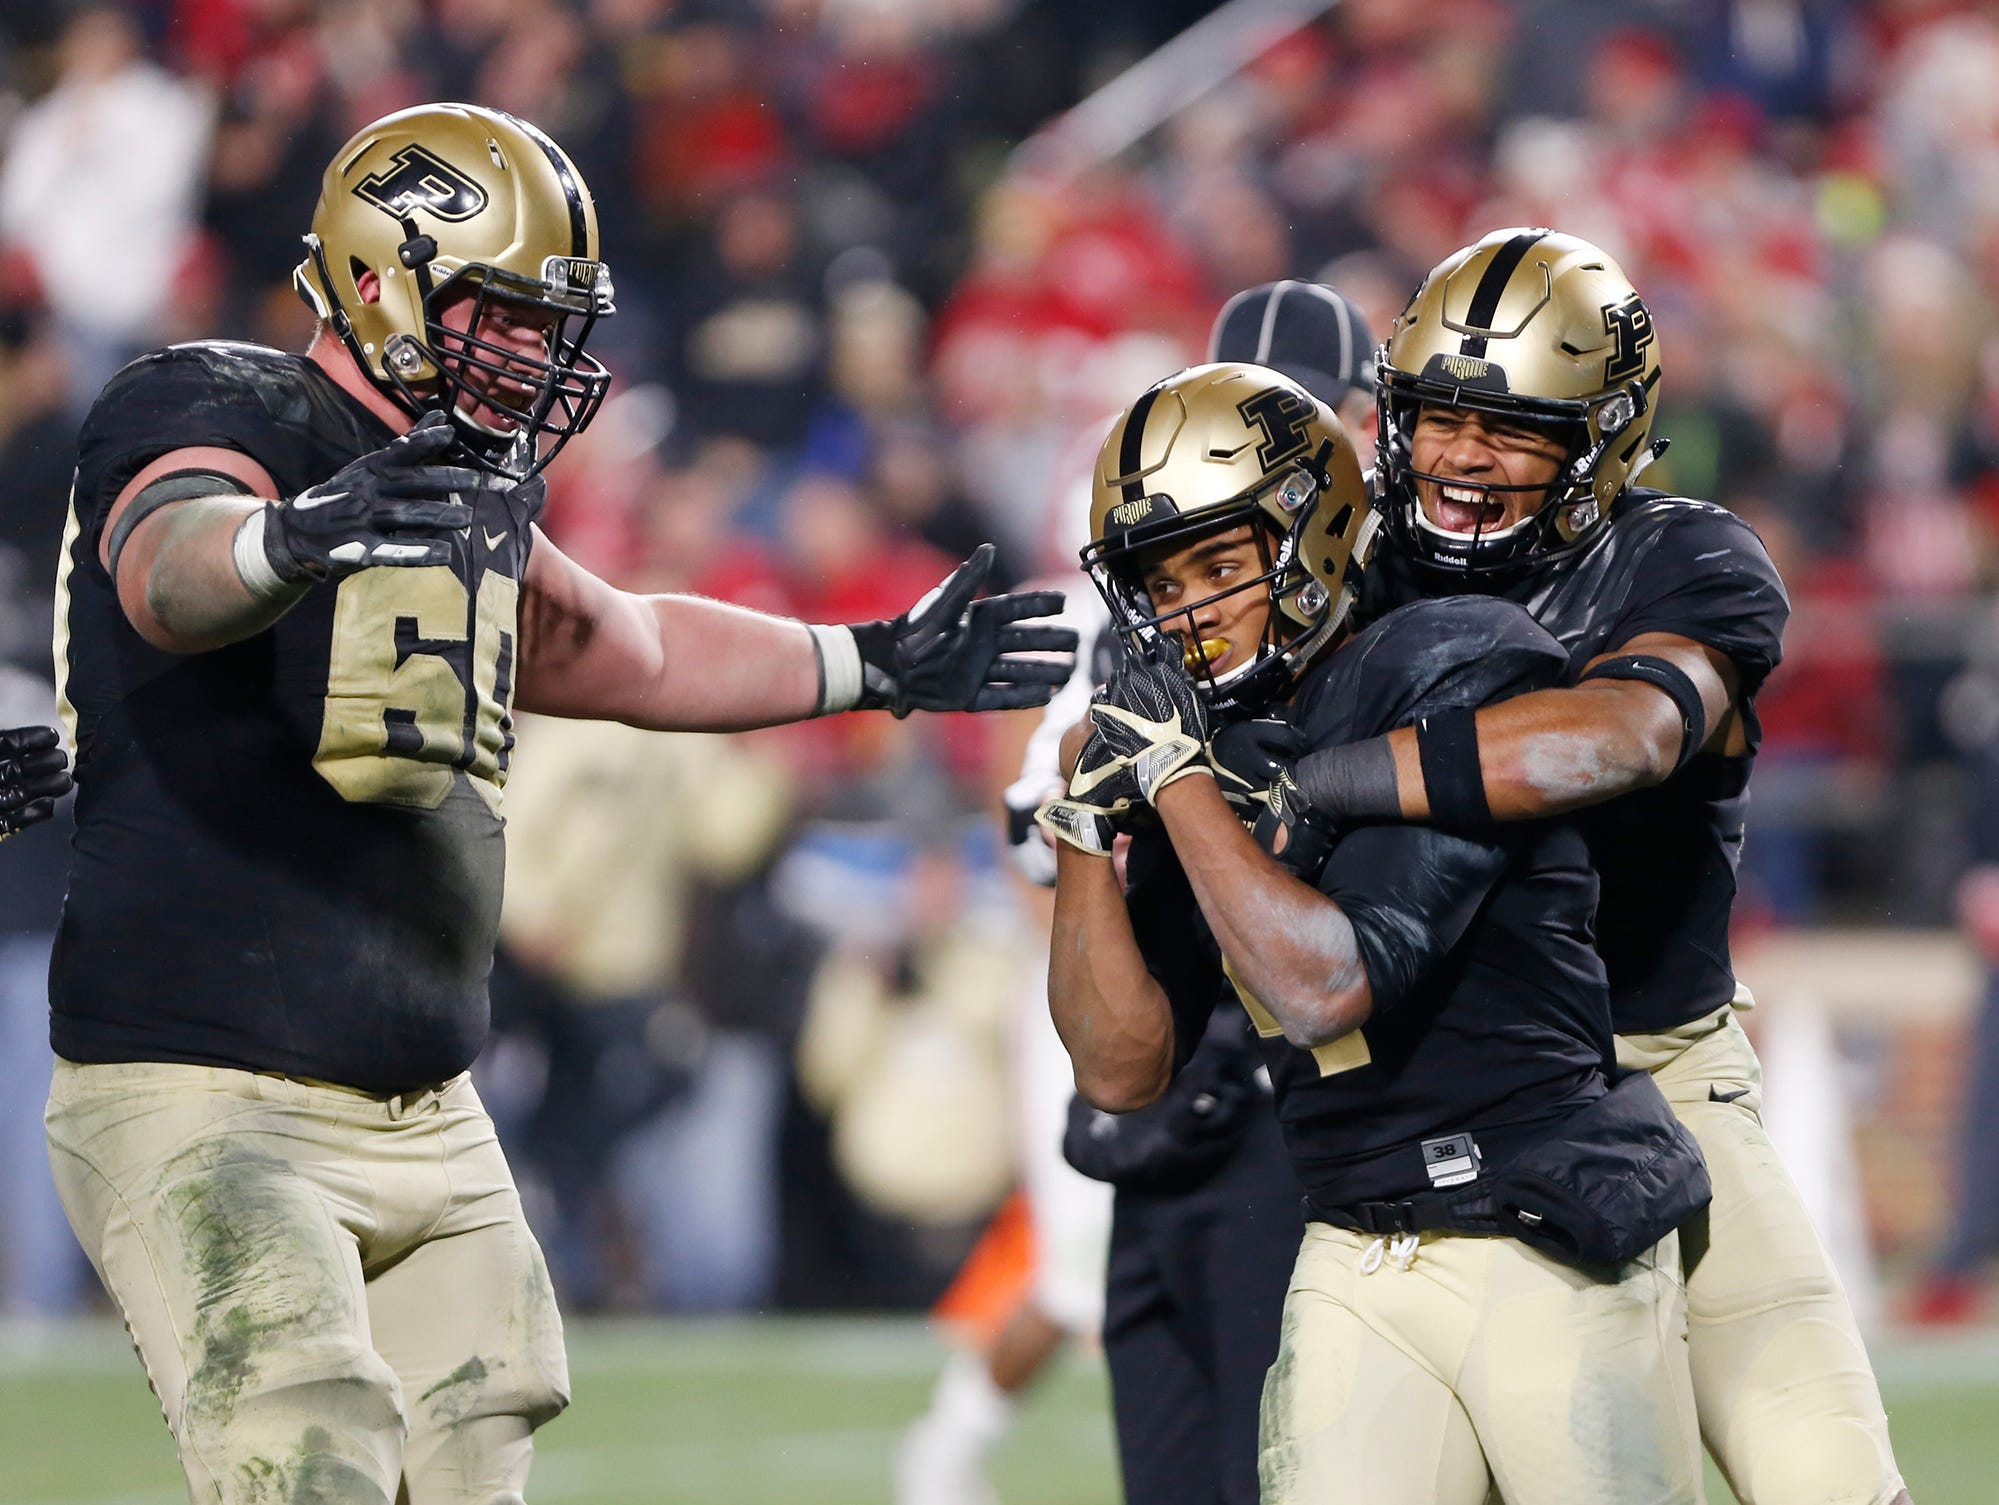 Rondale Moore of Purdue celebrates with teammates Jared Sparks and Eric Swingler, left, after his touchdown reception with 57 seconds remaining in the third quarter against Wisconsin Saturday, November 17, 2018, at Ross-Ade Stadium. Purdue fell to Wisconsin 47-44 3OT.